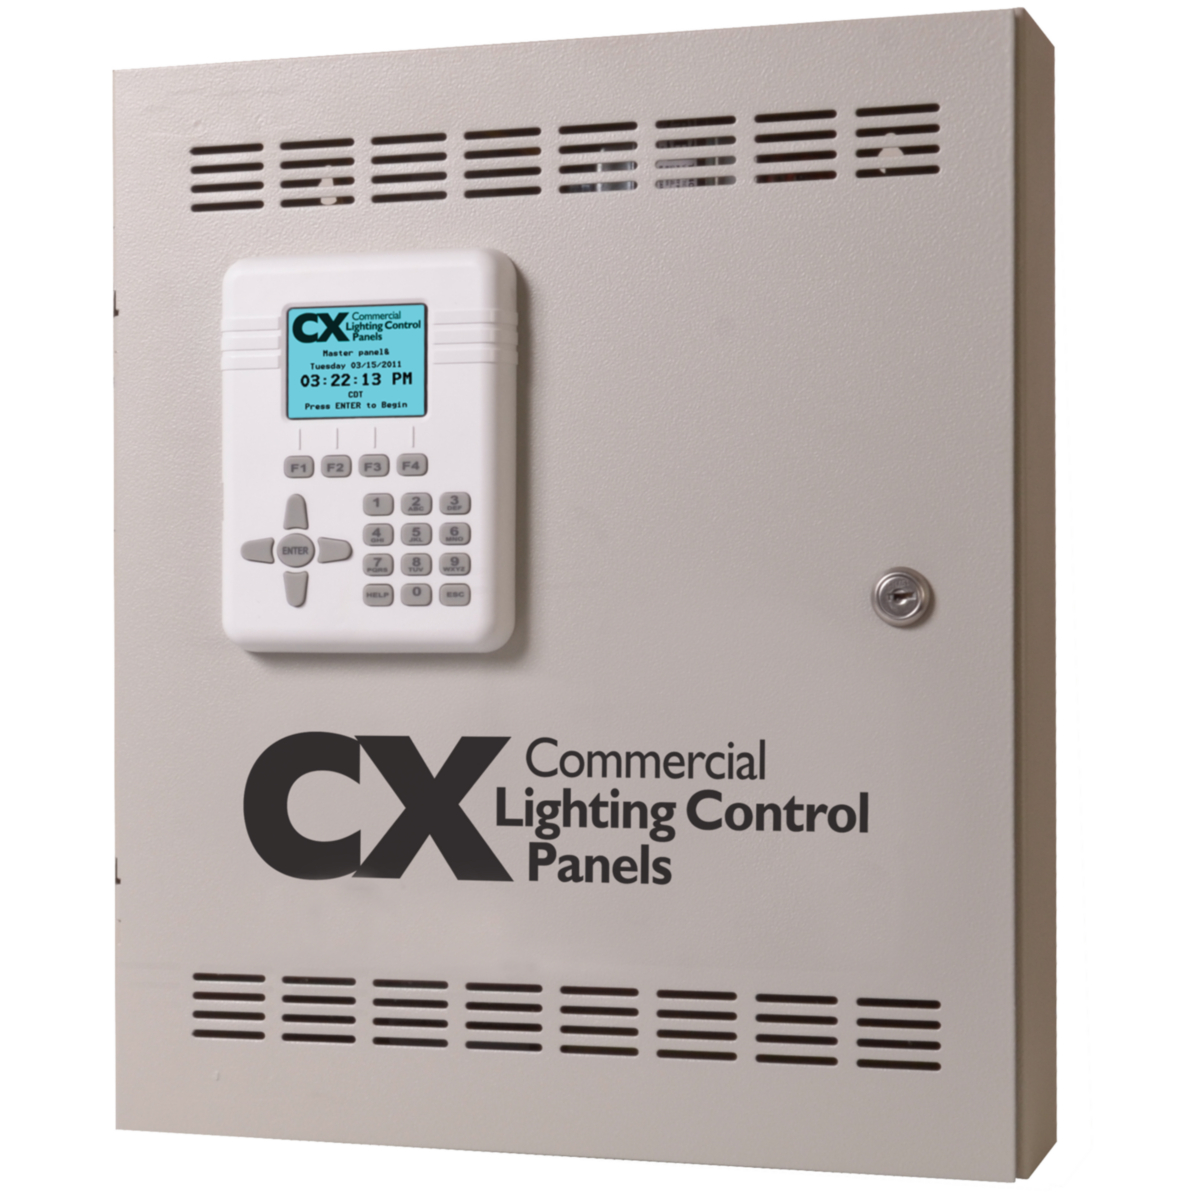 Cx Lighting Control Panels 4 And 8 Relays Brand Hubbell Eaton Contactor 277v Wiring Diagram Hcs Cx04 Panel Jmk1192 3 Prodimage